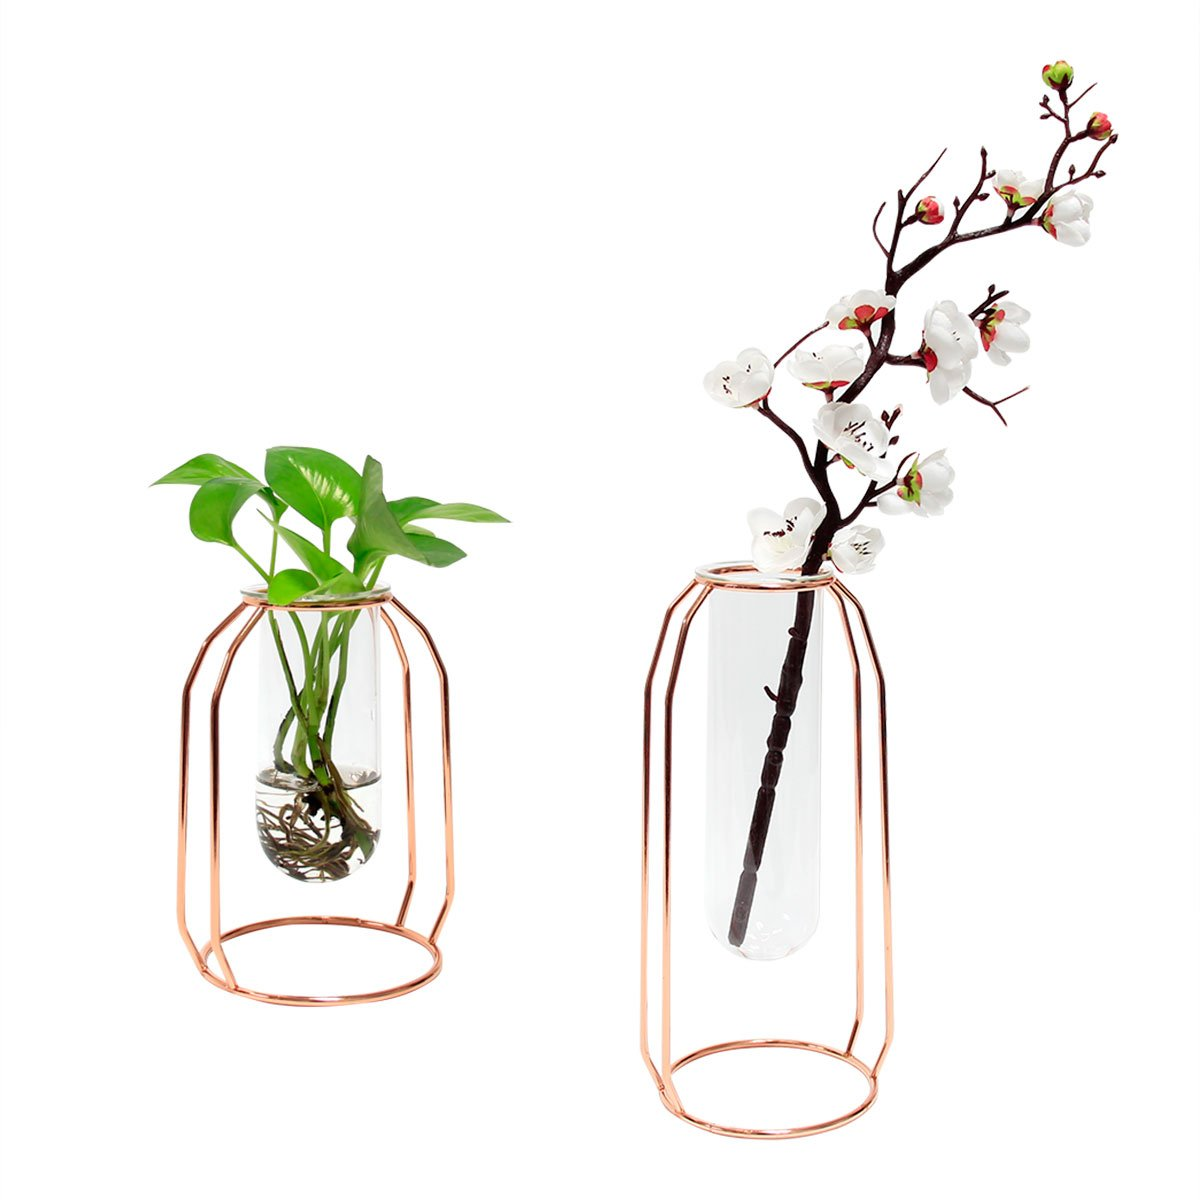 Bizzoelife Metal Frame Glass Vases Set of 2 Creative Plant Flower Holder for Home Office Party Decor